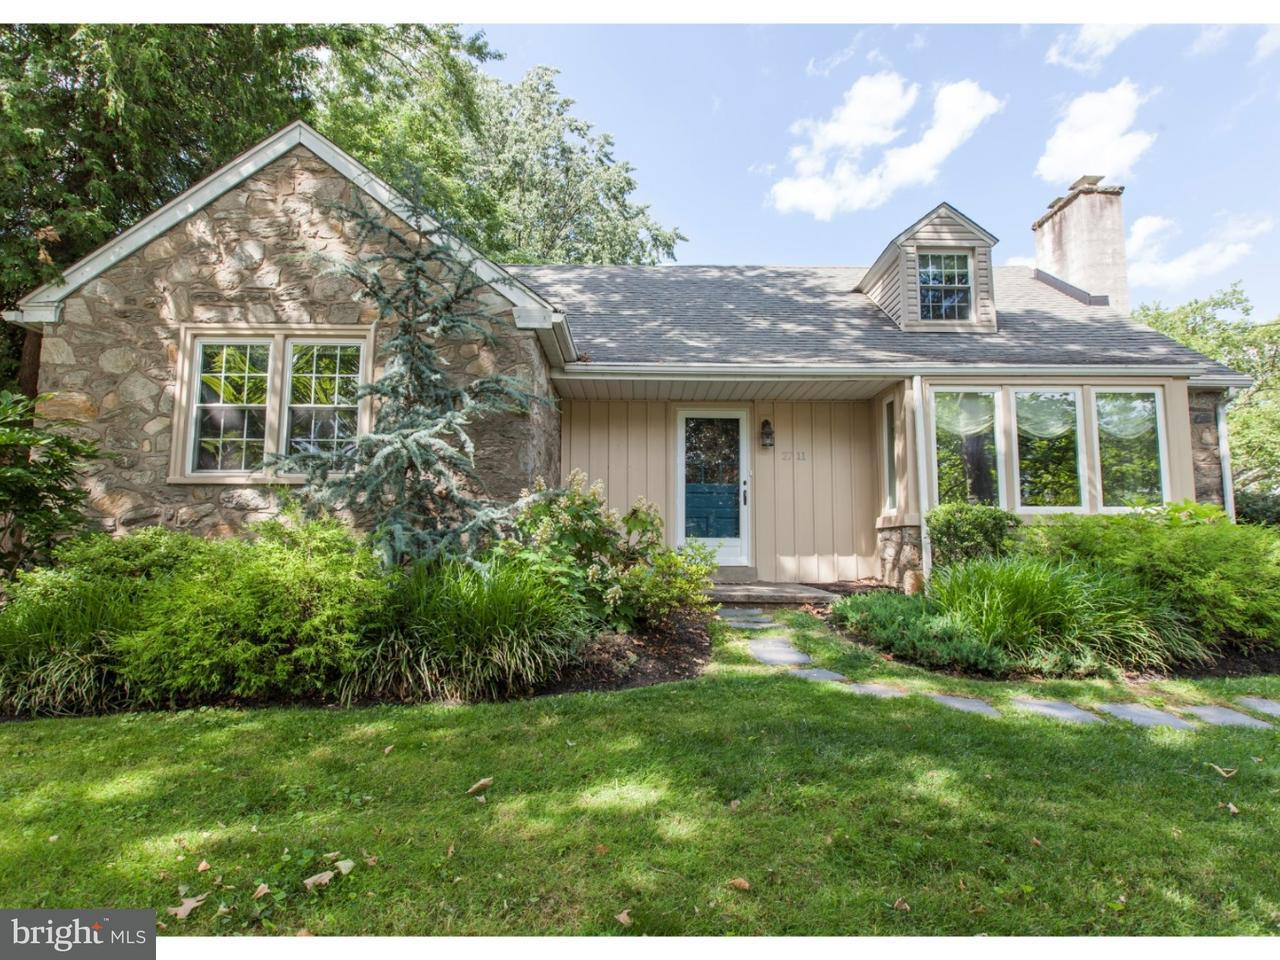 2711 W Darby Havertown, PA 19083